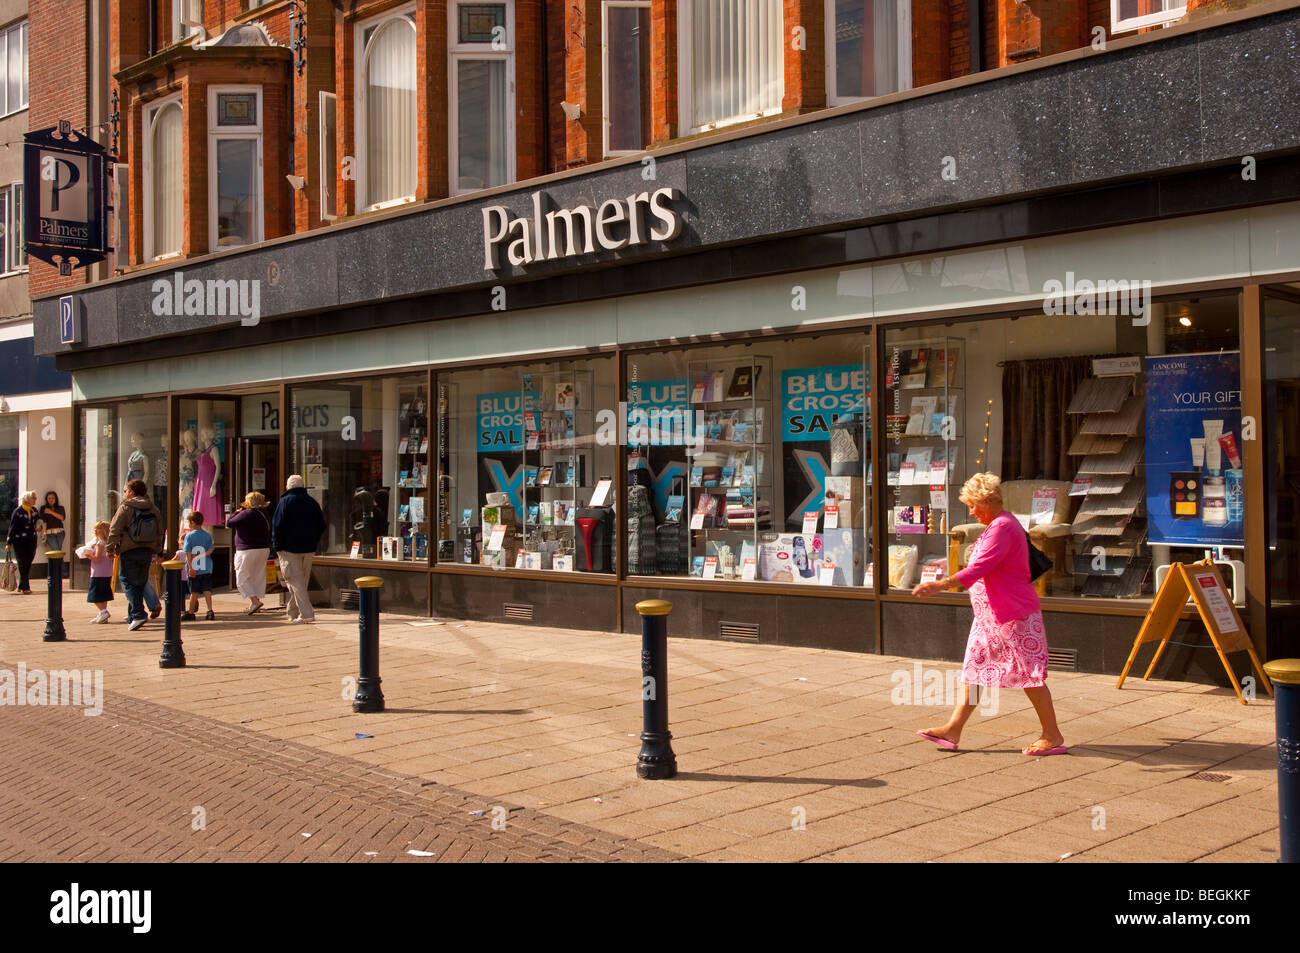 Palmers Stock Photos Palmers Stock Images Alamy